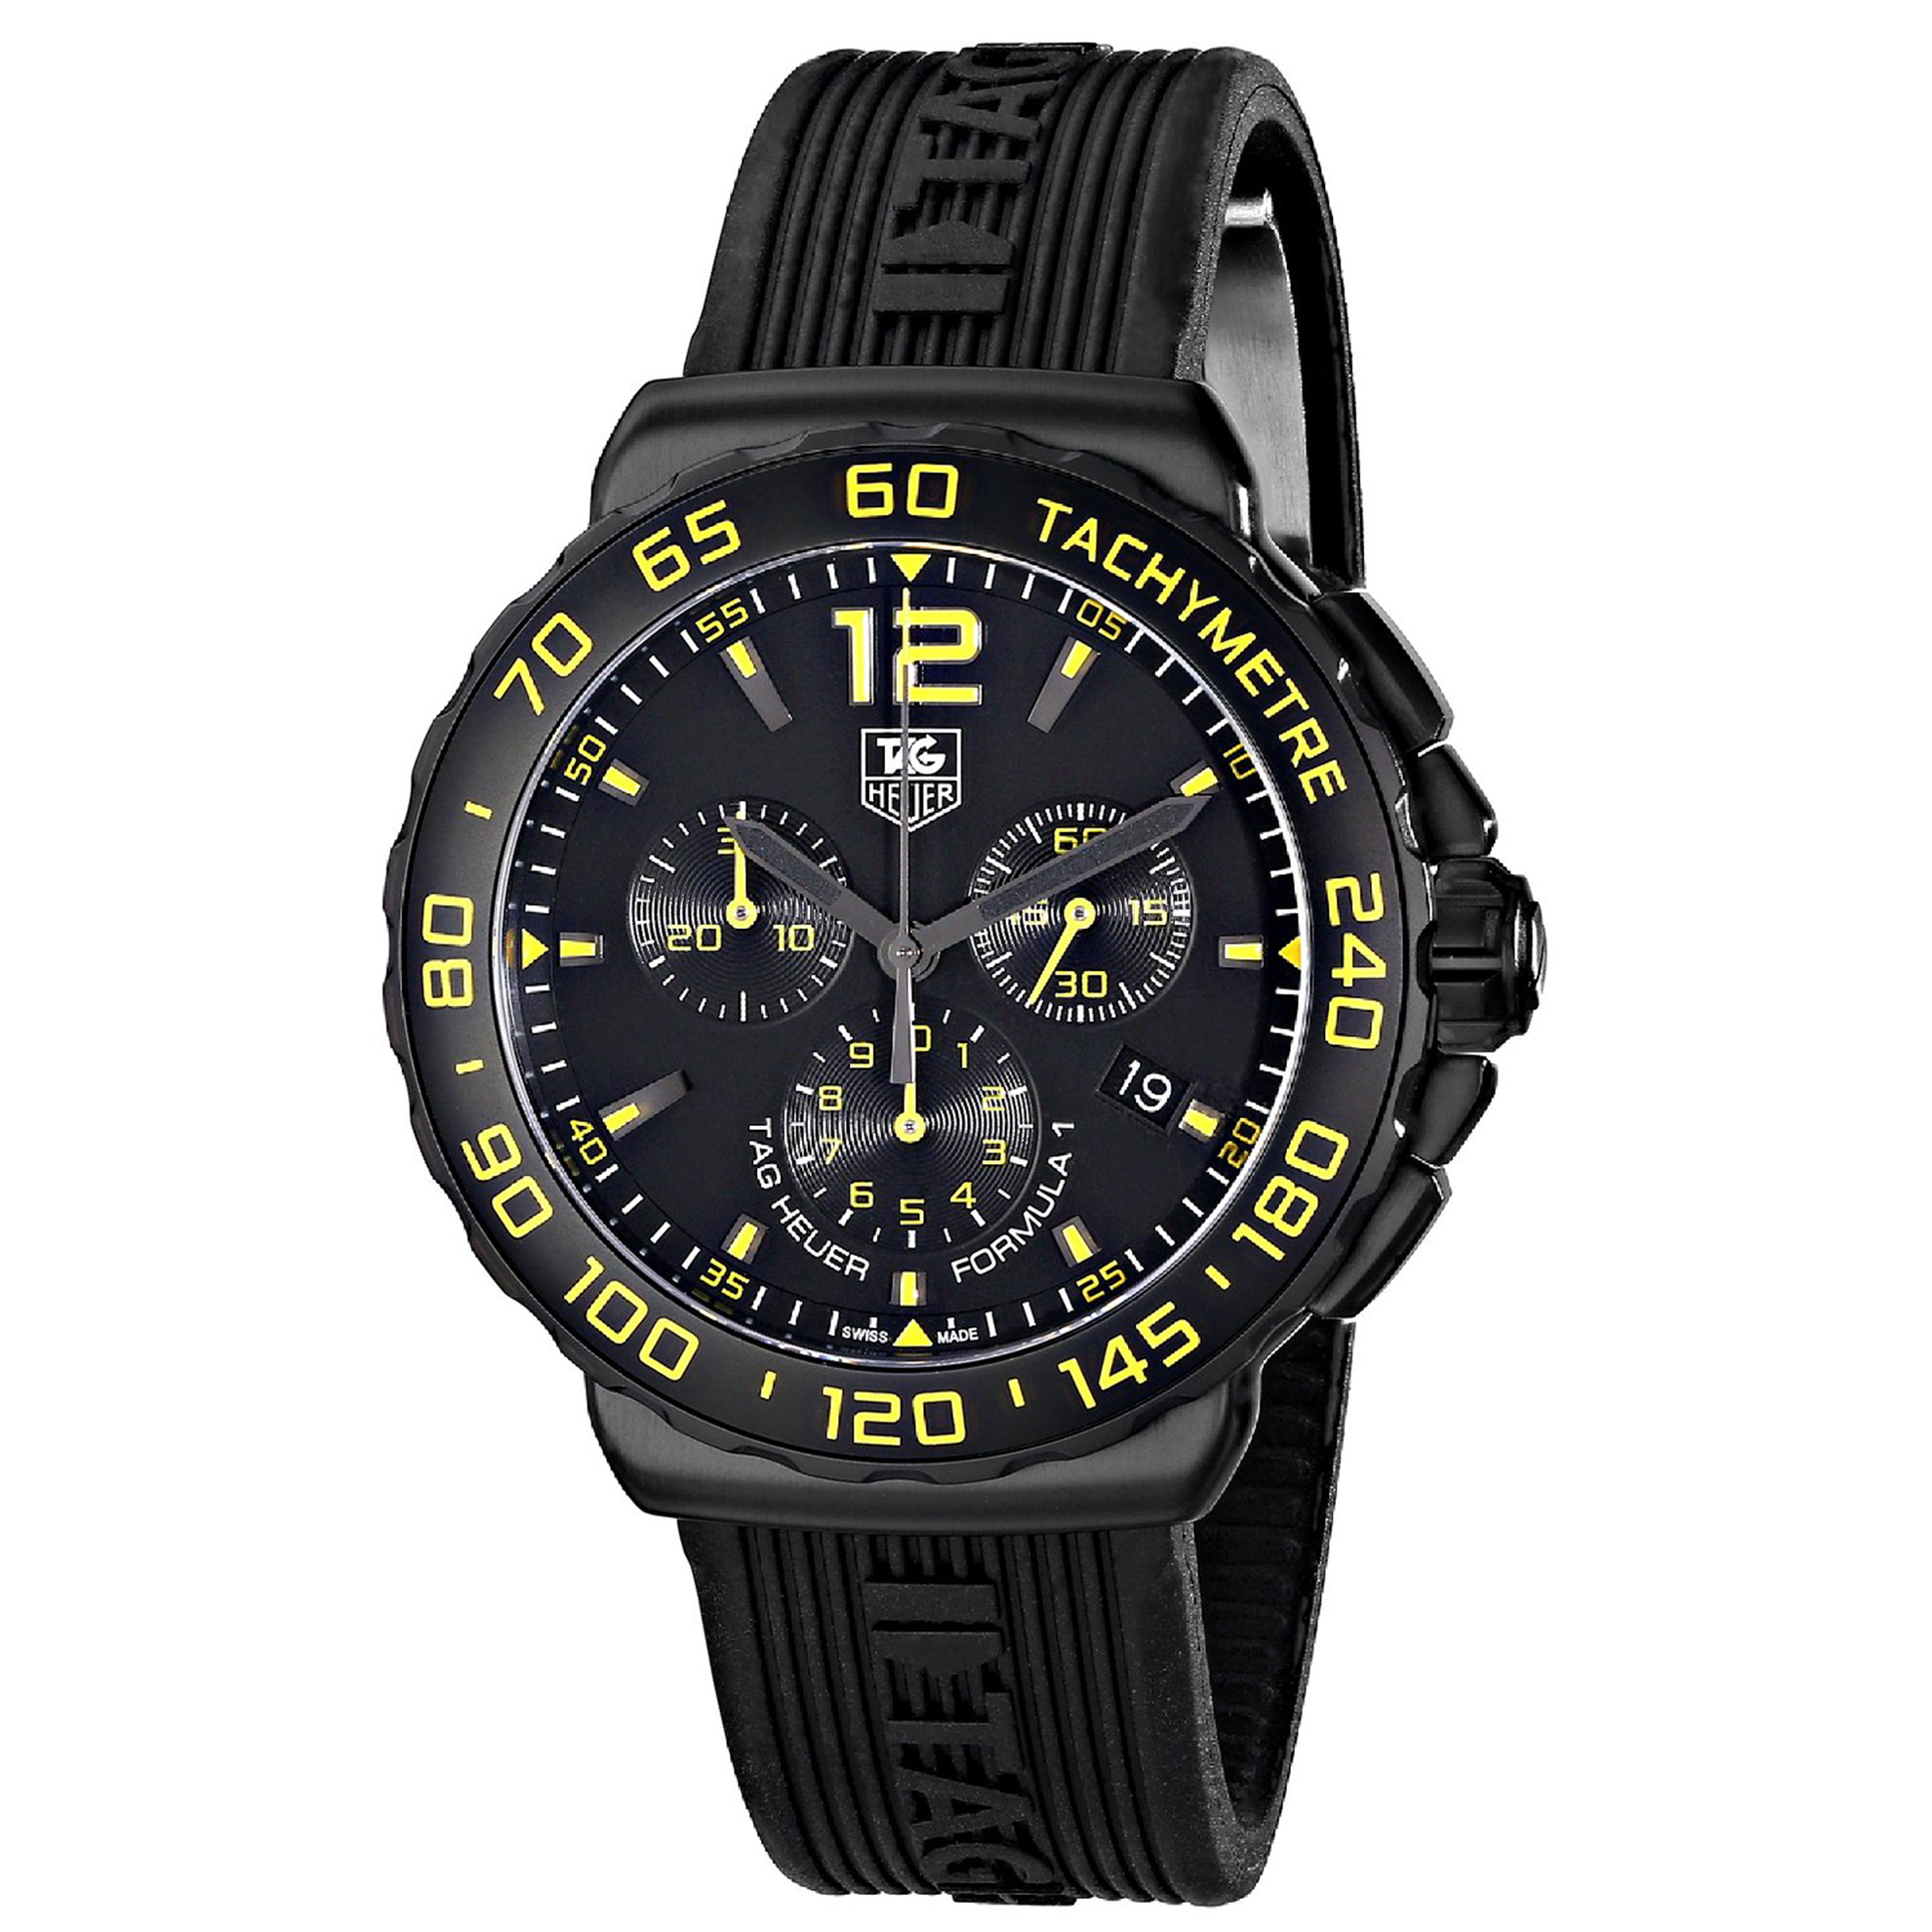 Tag Heuer CAU111E.FT6024 TAG Heuer Formula 1 Chrono All Black Steel Coated Titanium Carbide Case Blk/Yel Dial Rubber Strap